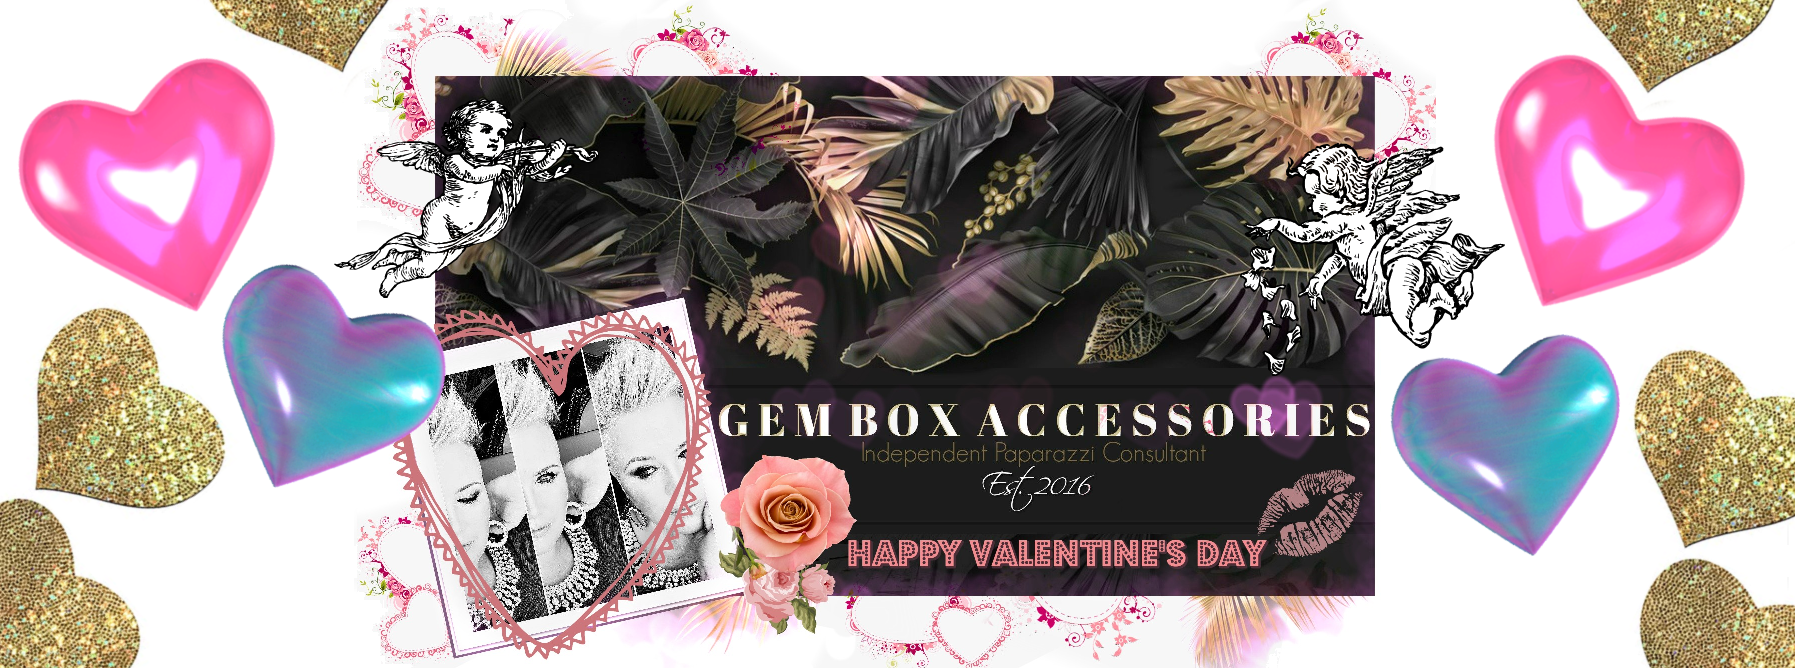 Paparazzi Jewelry | Valentine's Day Boutique Red, Pink, & Heart Items | Gem Box Accessories